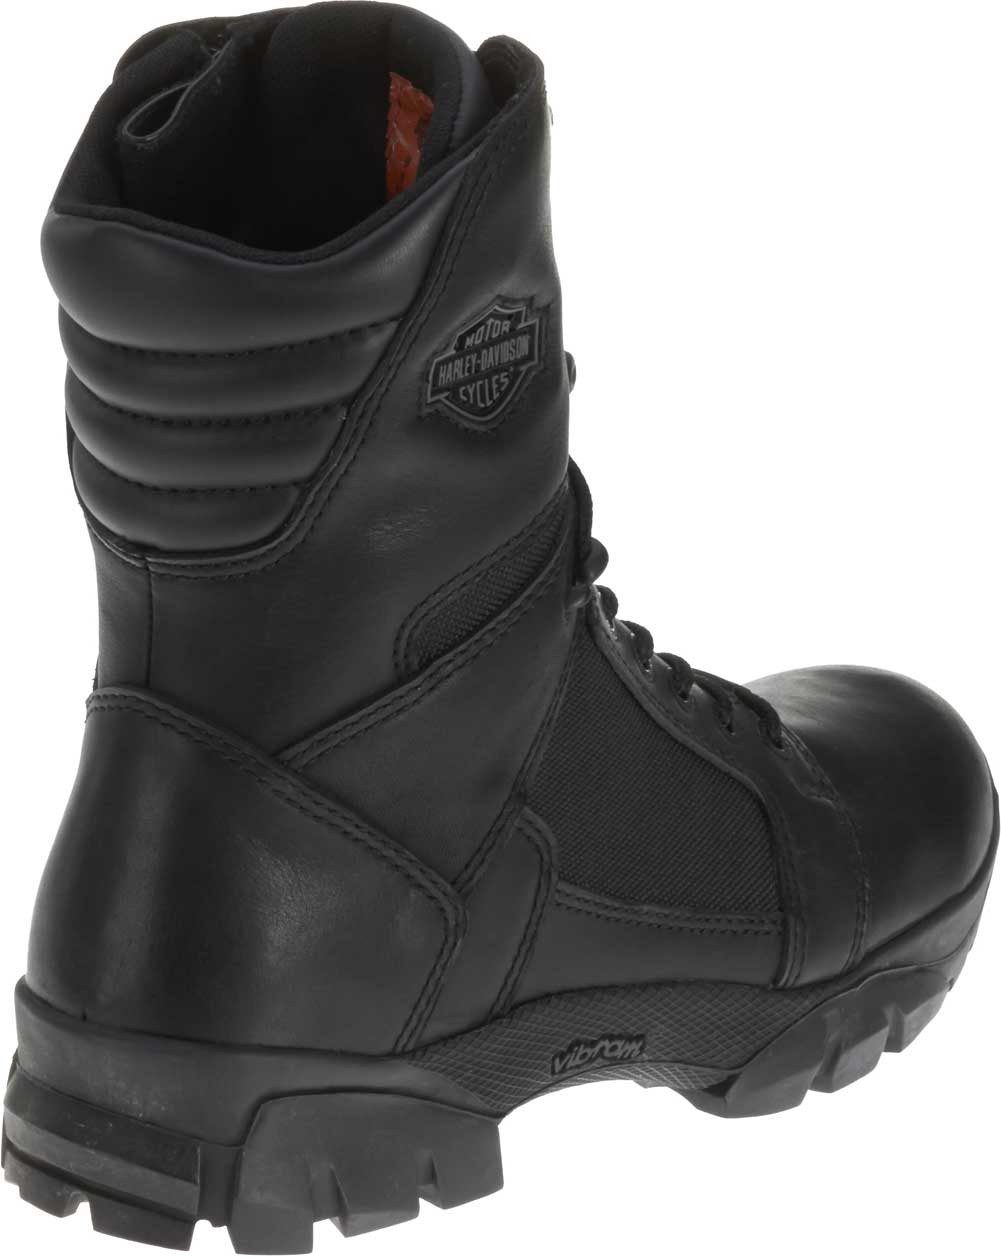 23a1b4556e11 Harley-Davidson® Men s Lynx Waterproof Black 8-Inch Motorcycle Boots D95149  - Wisconsin Harley-Davidson